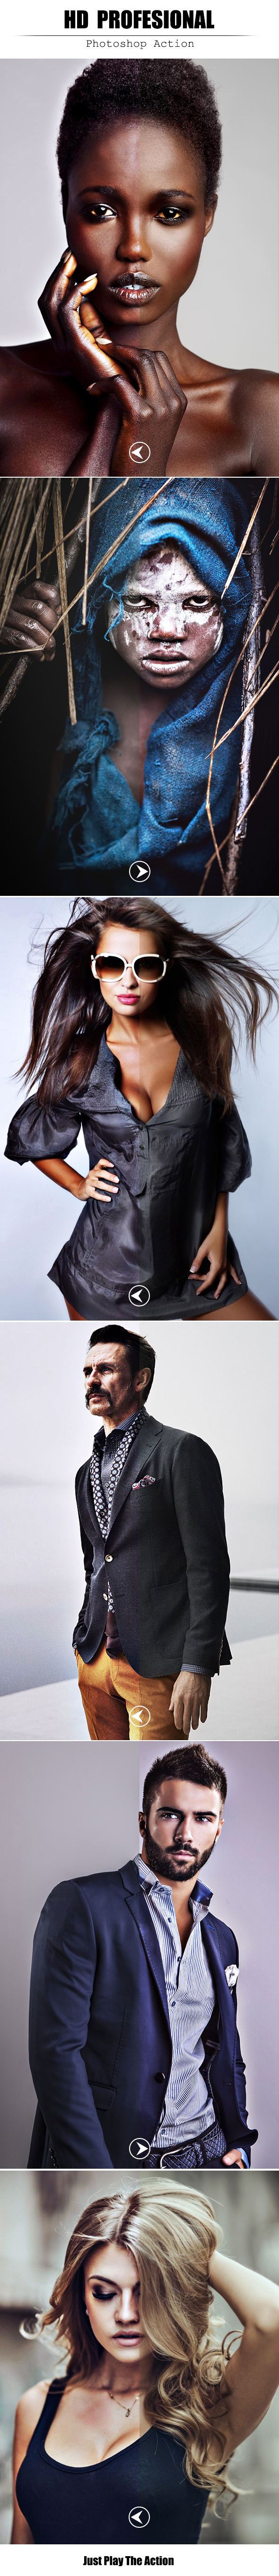 HD Profesional - Photo Effects Actions